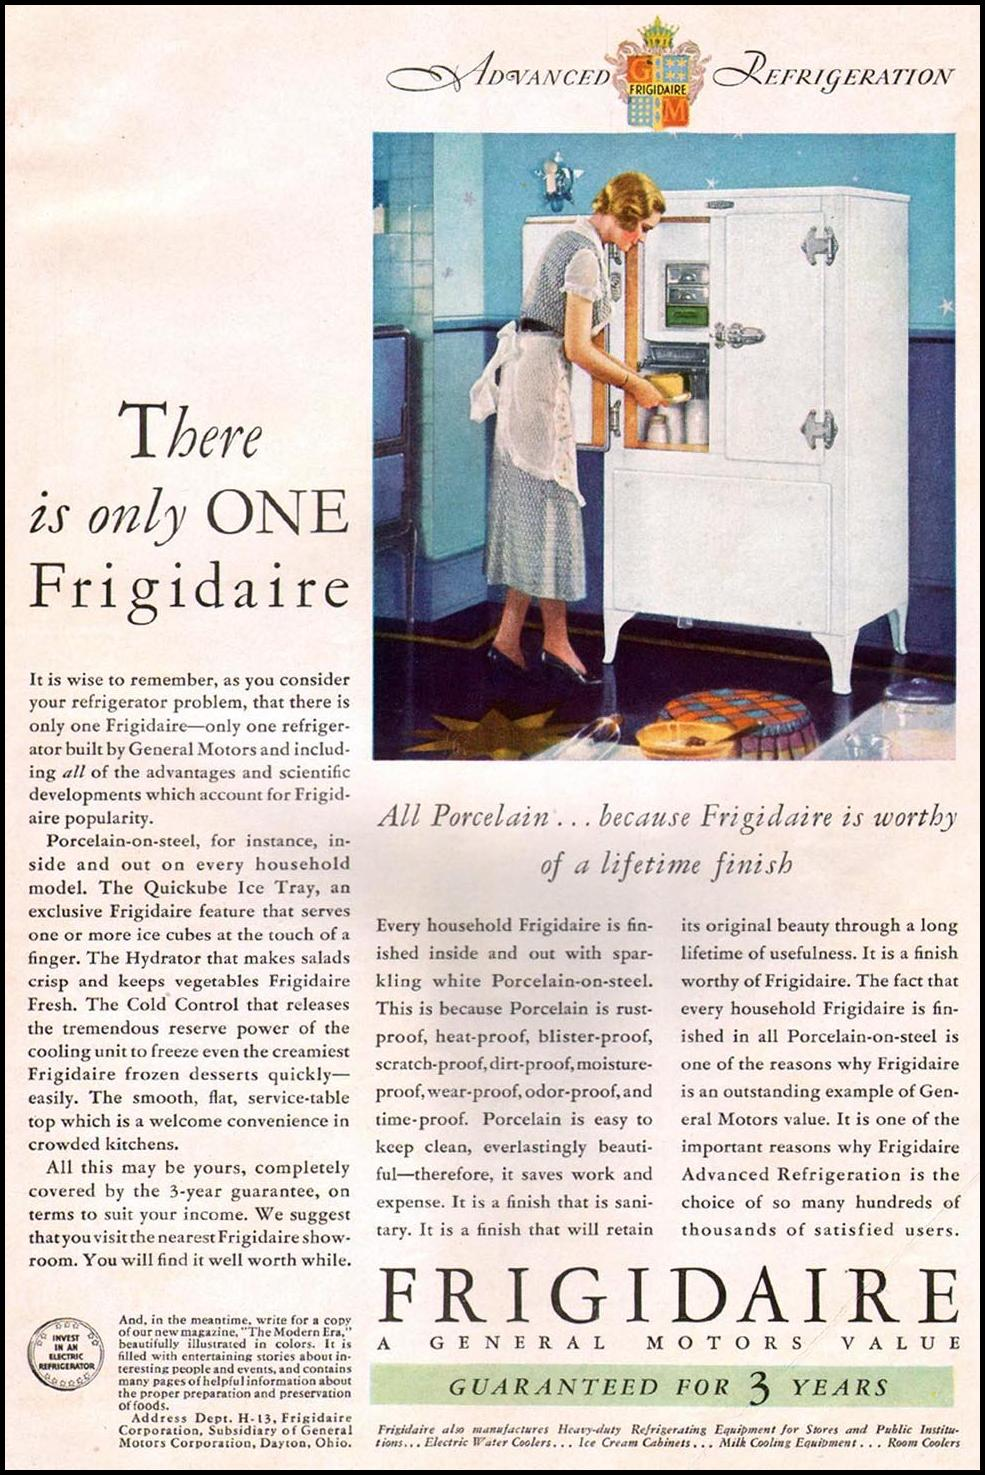 FRIGIDAIRE REFRIGERATORS BETTER HOMES AND GARDENS 09/01/1931 BACK COVER